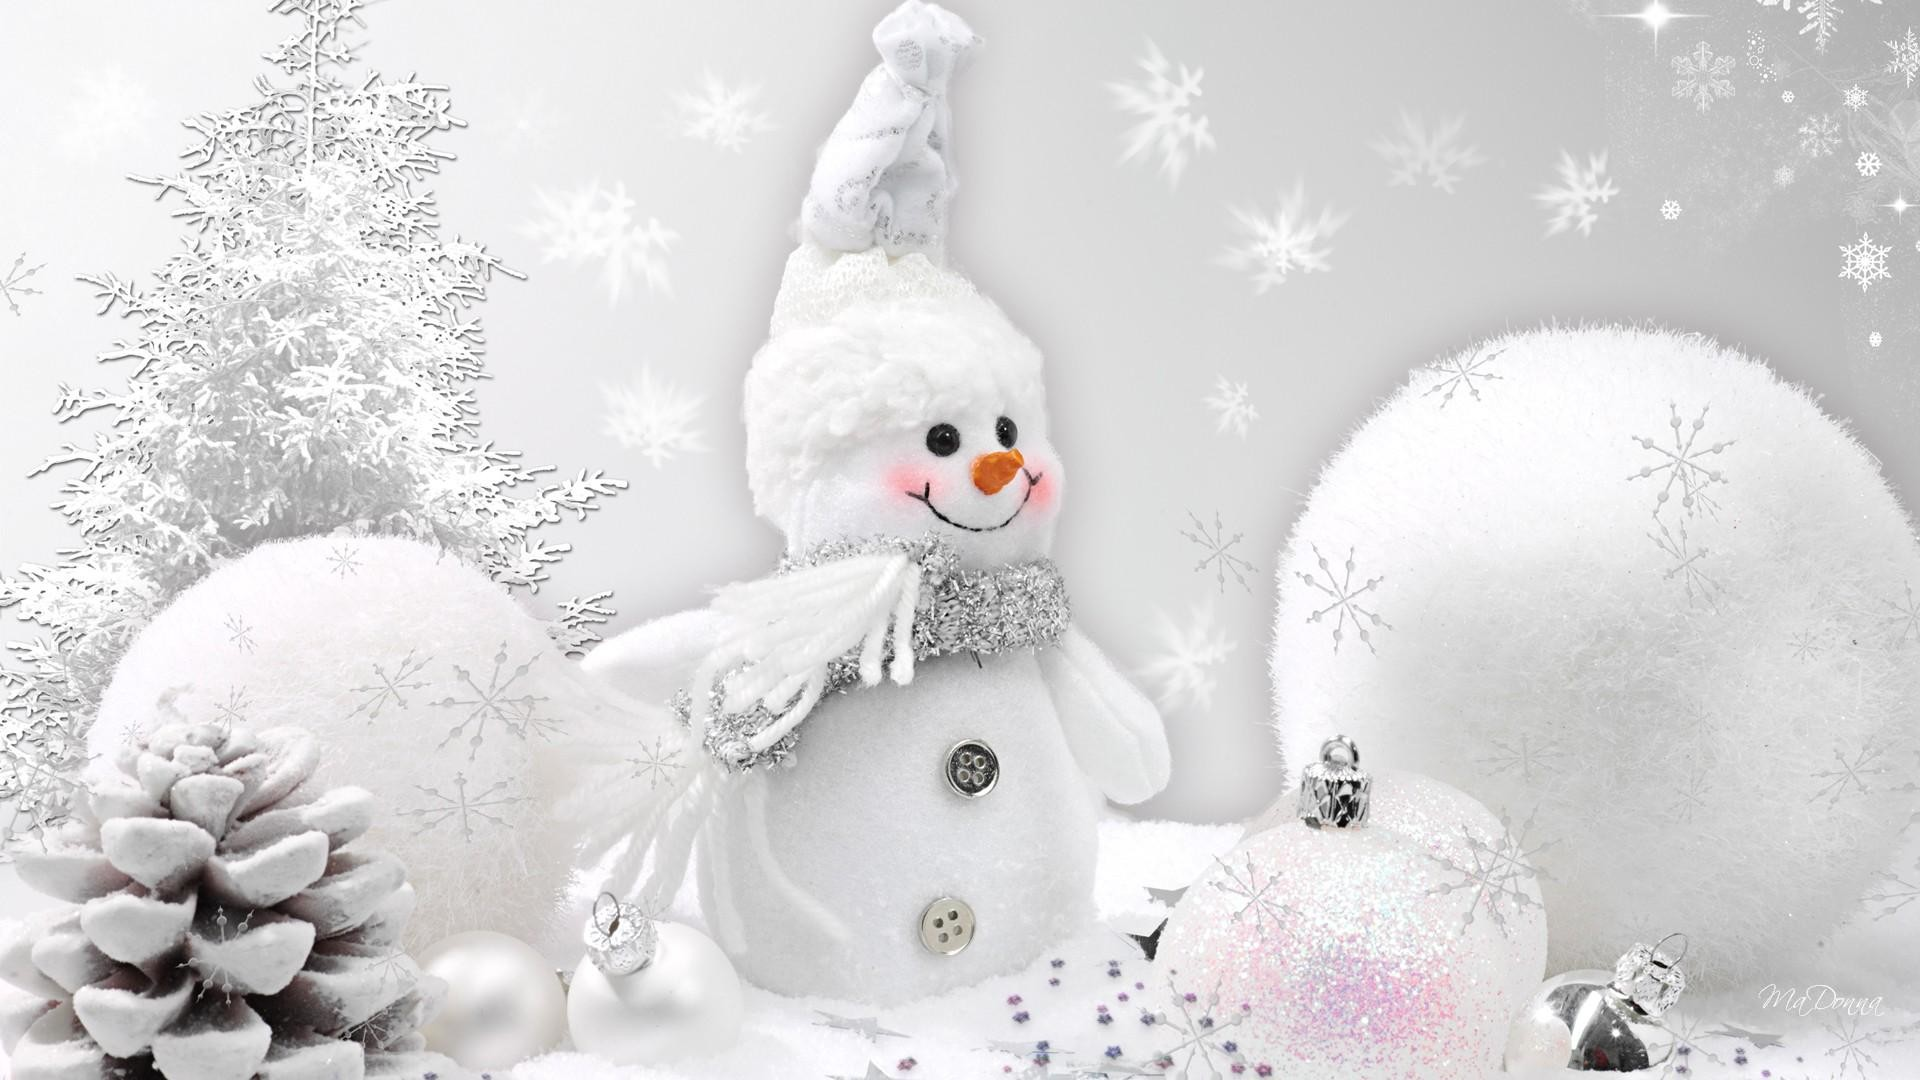 Res: 1920x1080, country snowman wallpaper